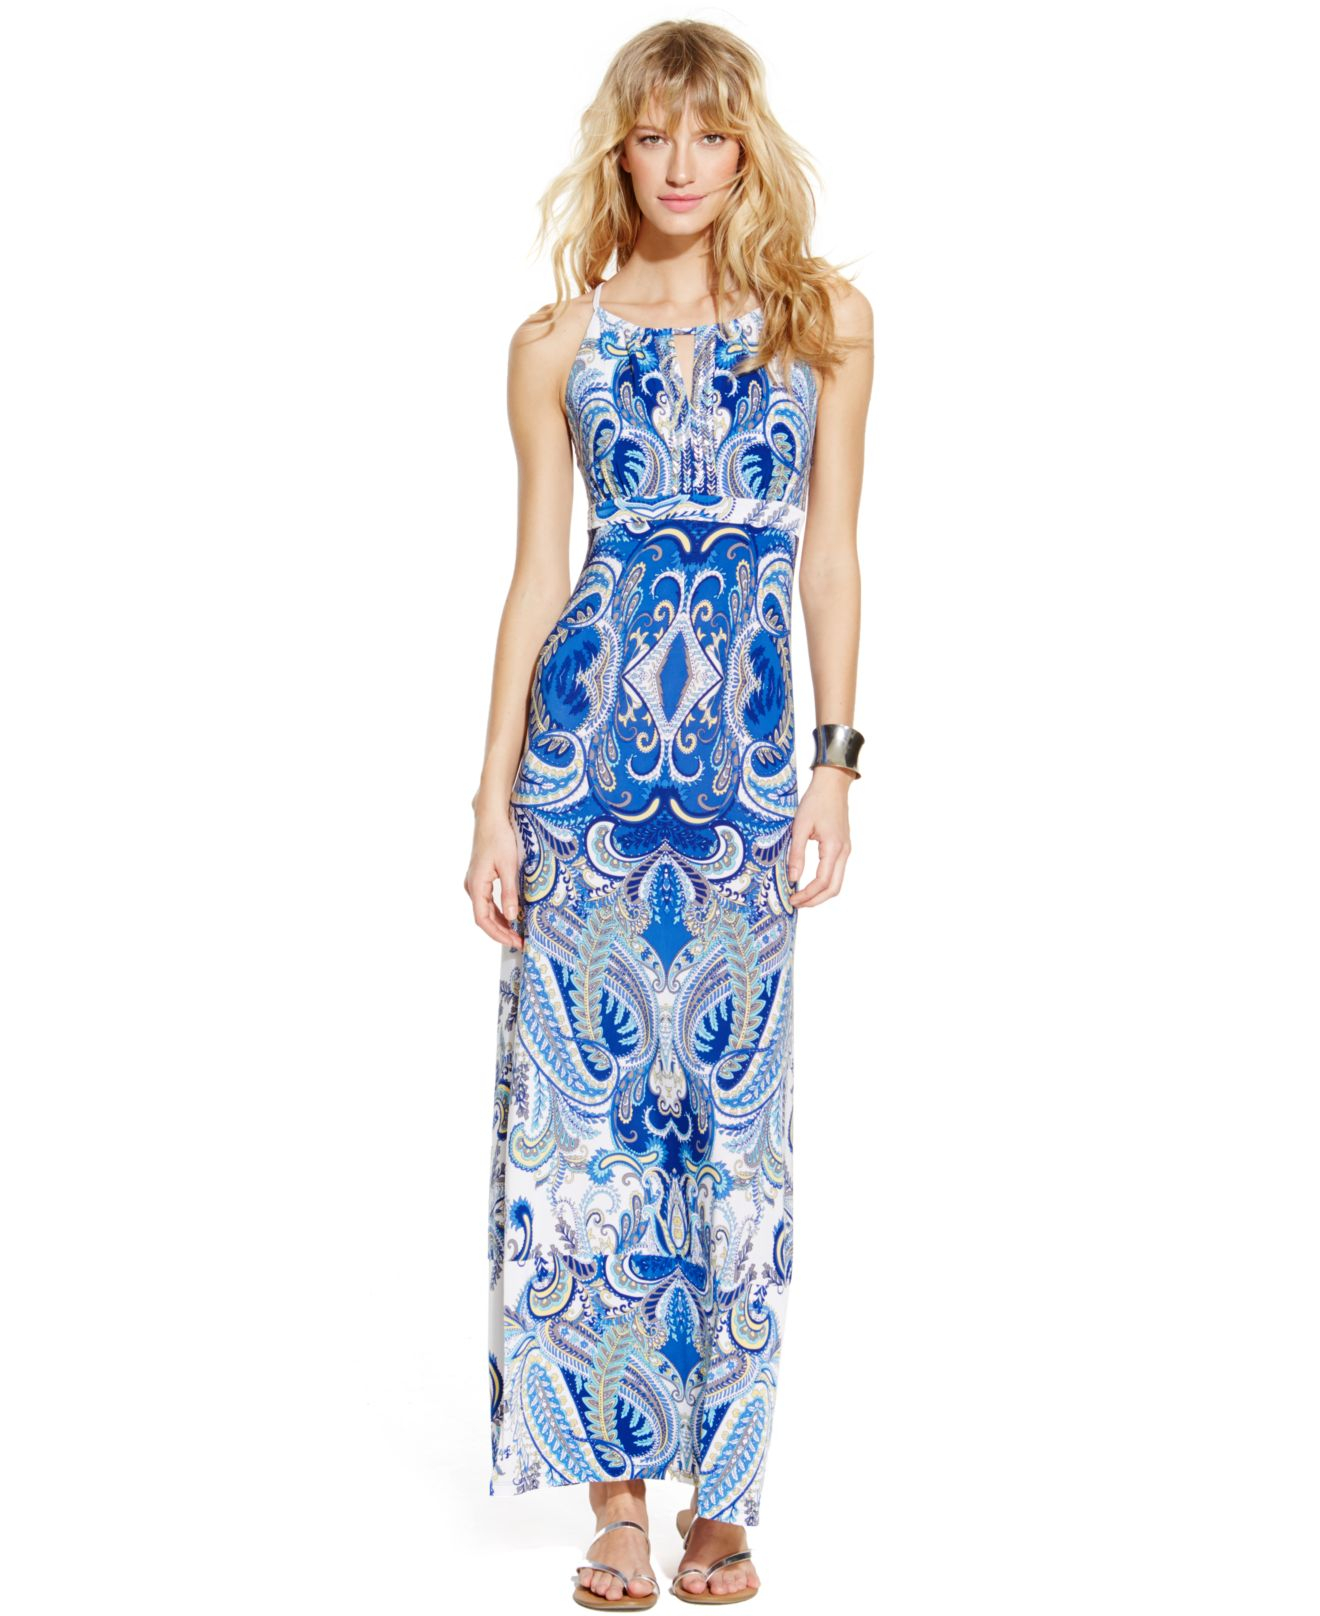 Inc international concepts Printed Beaded Halter Maxi Dress in ...